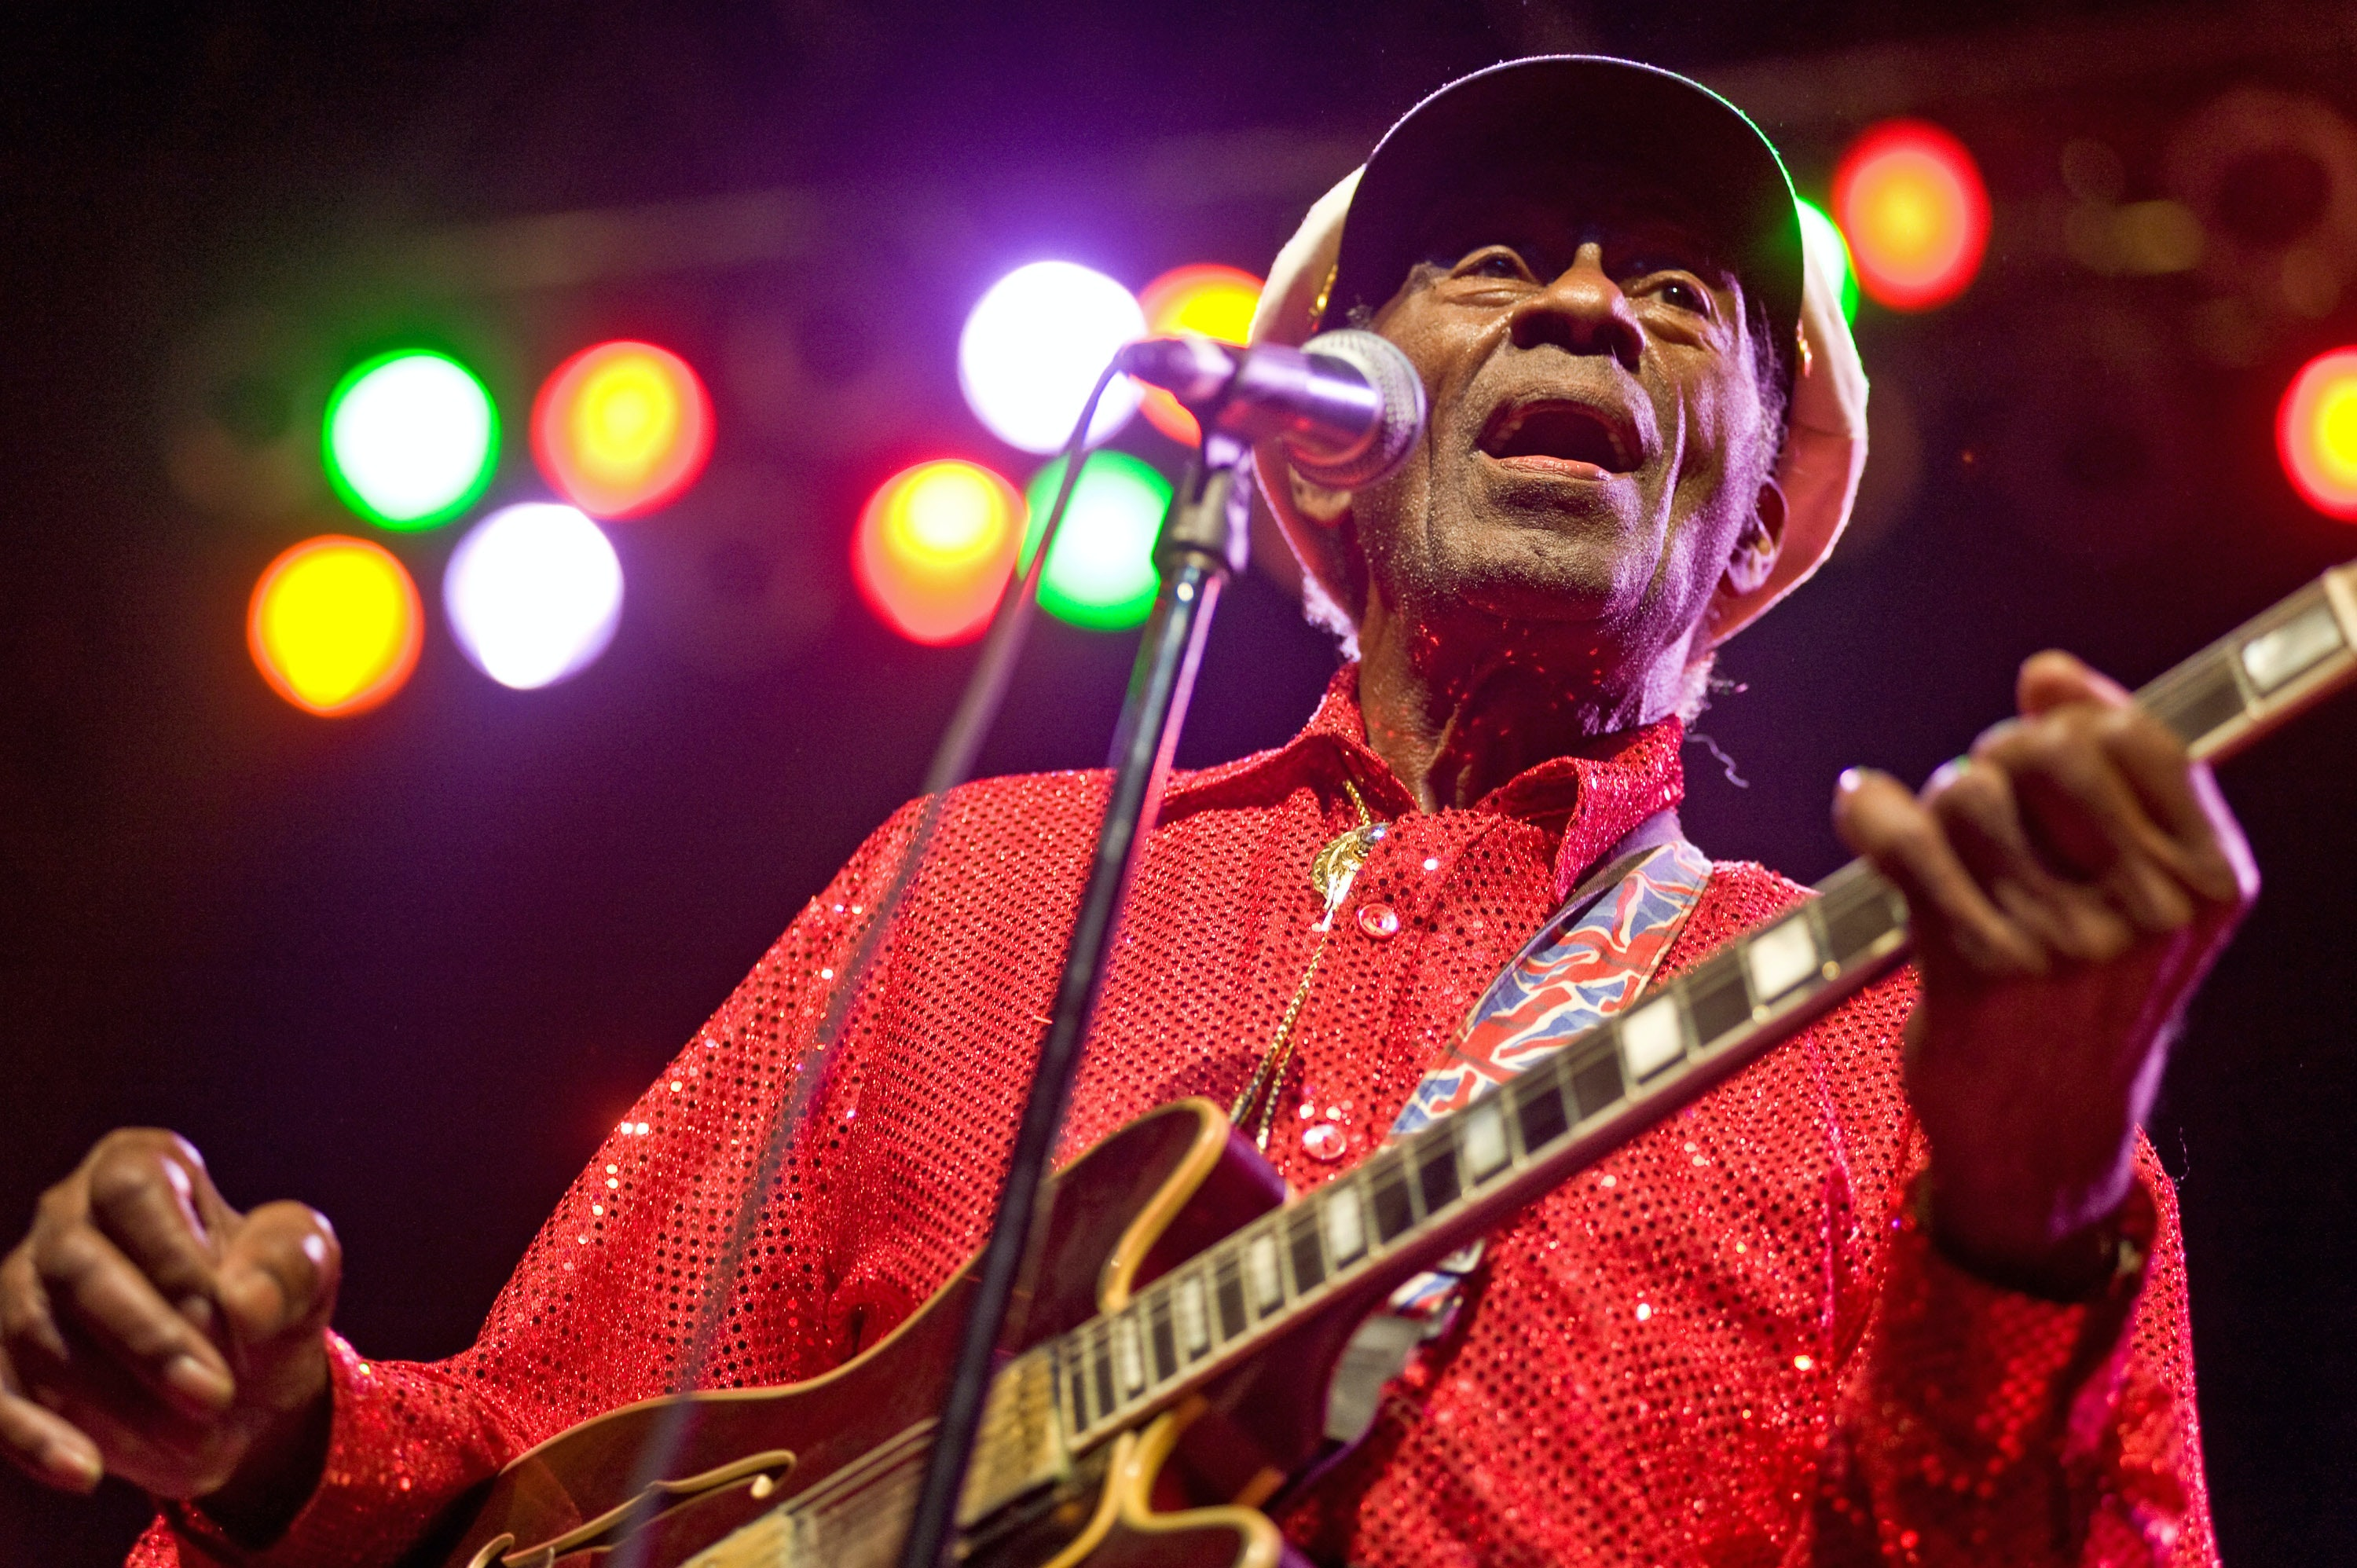 Chuck Berry's music teaching kindergartners the history of Rock